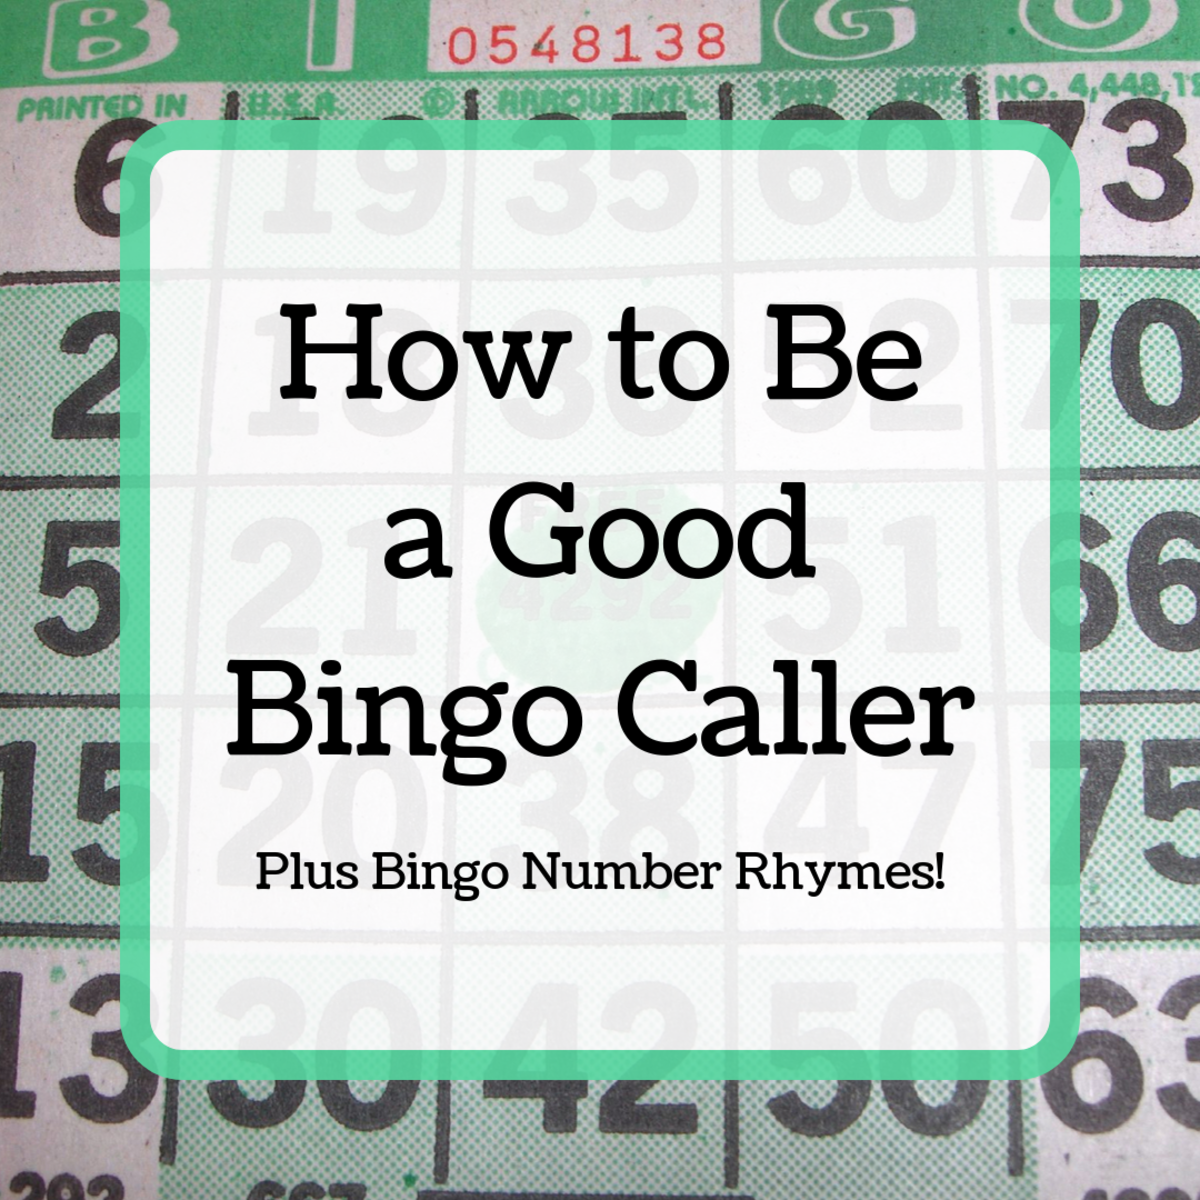 Before you try to call a game, read this article to get advice from a former professional bingo caller.